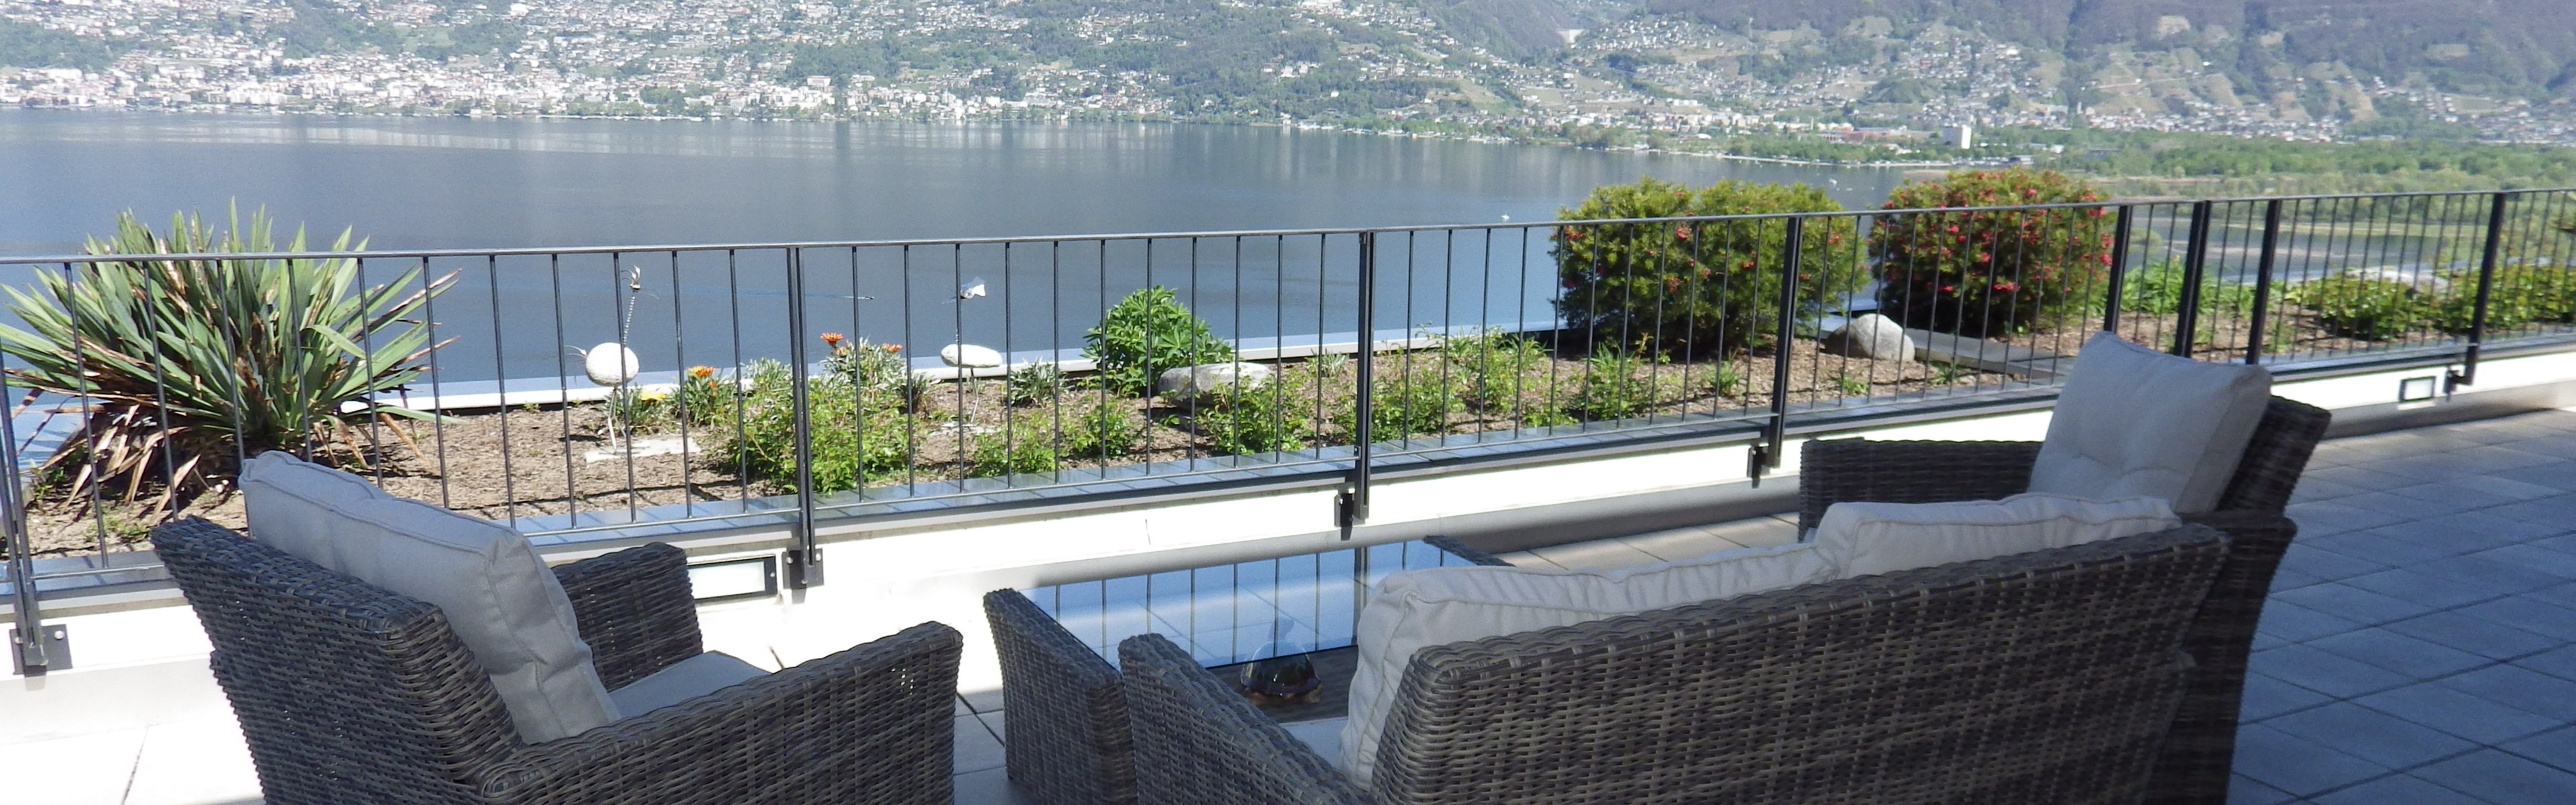 Immobilien in Ascona - SLIDER7.jpg